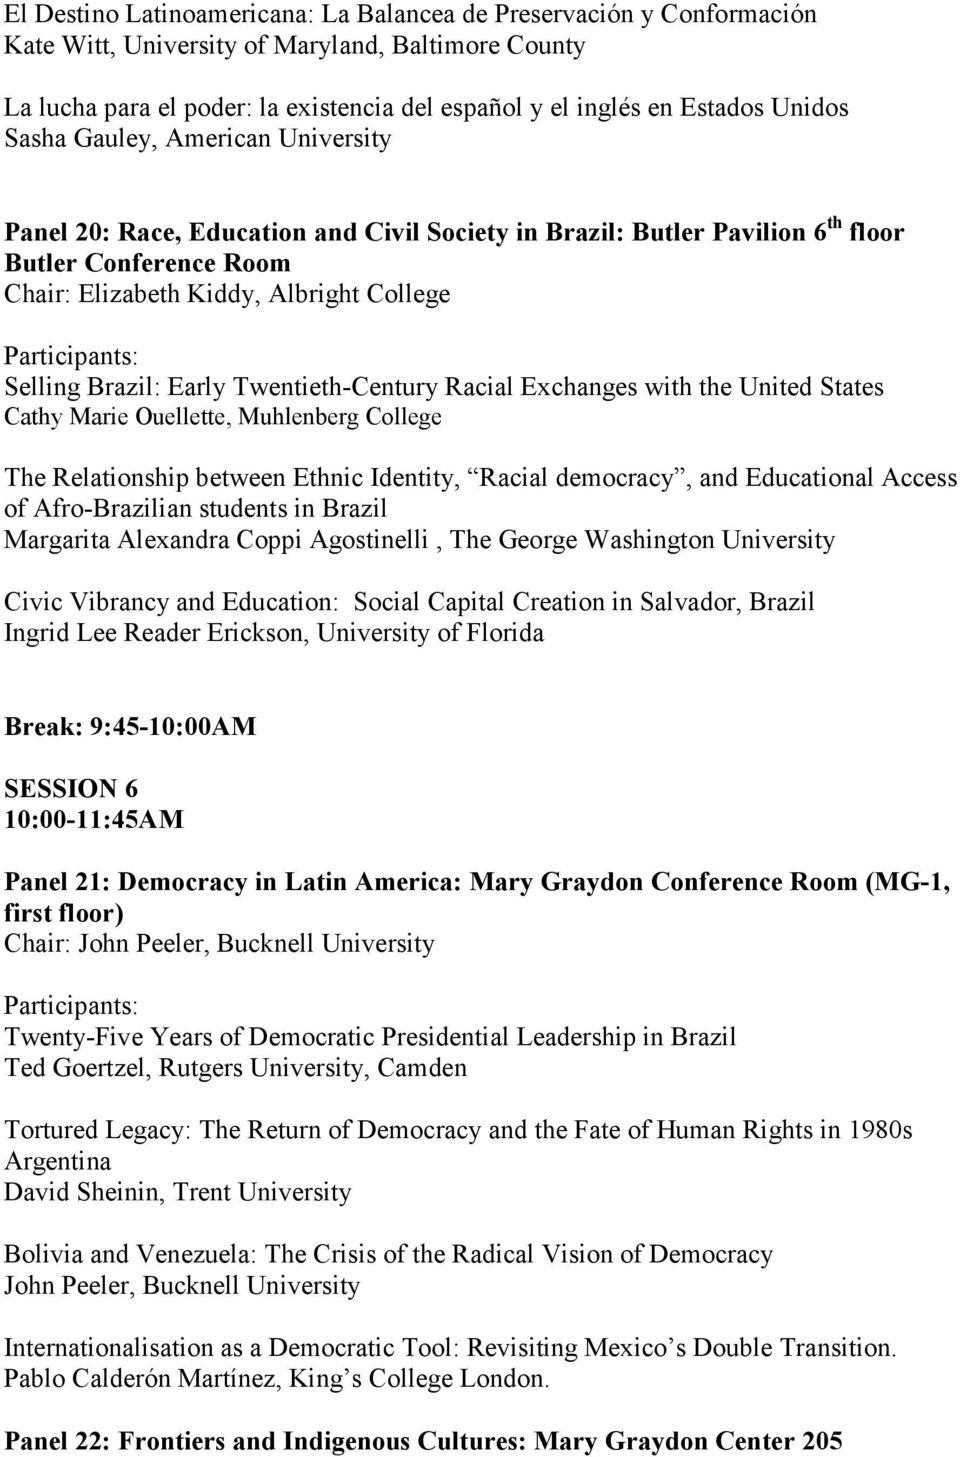 Brazil: Early Twentieth-Century Racial Exchanges with the United States Cathy Marie Ouellette, Muhlenberg College The Relationship between Ethnic Identity, Racial democracy, and Educational Access of